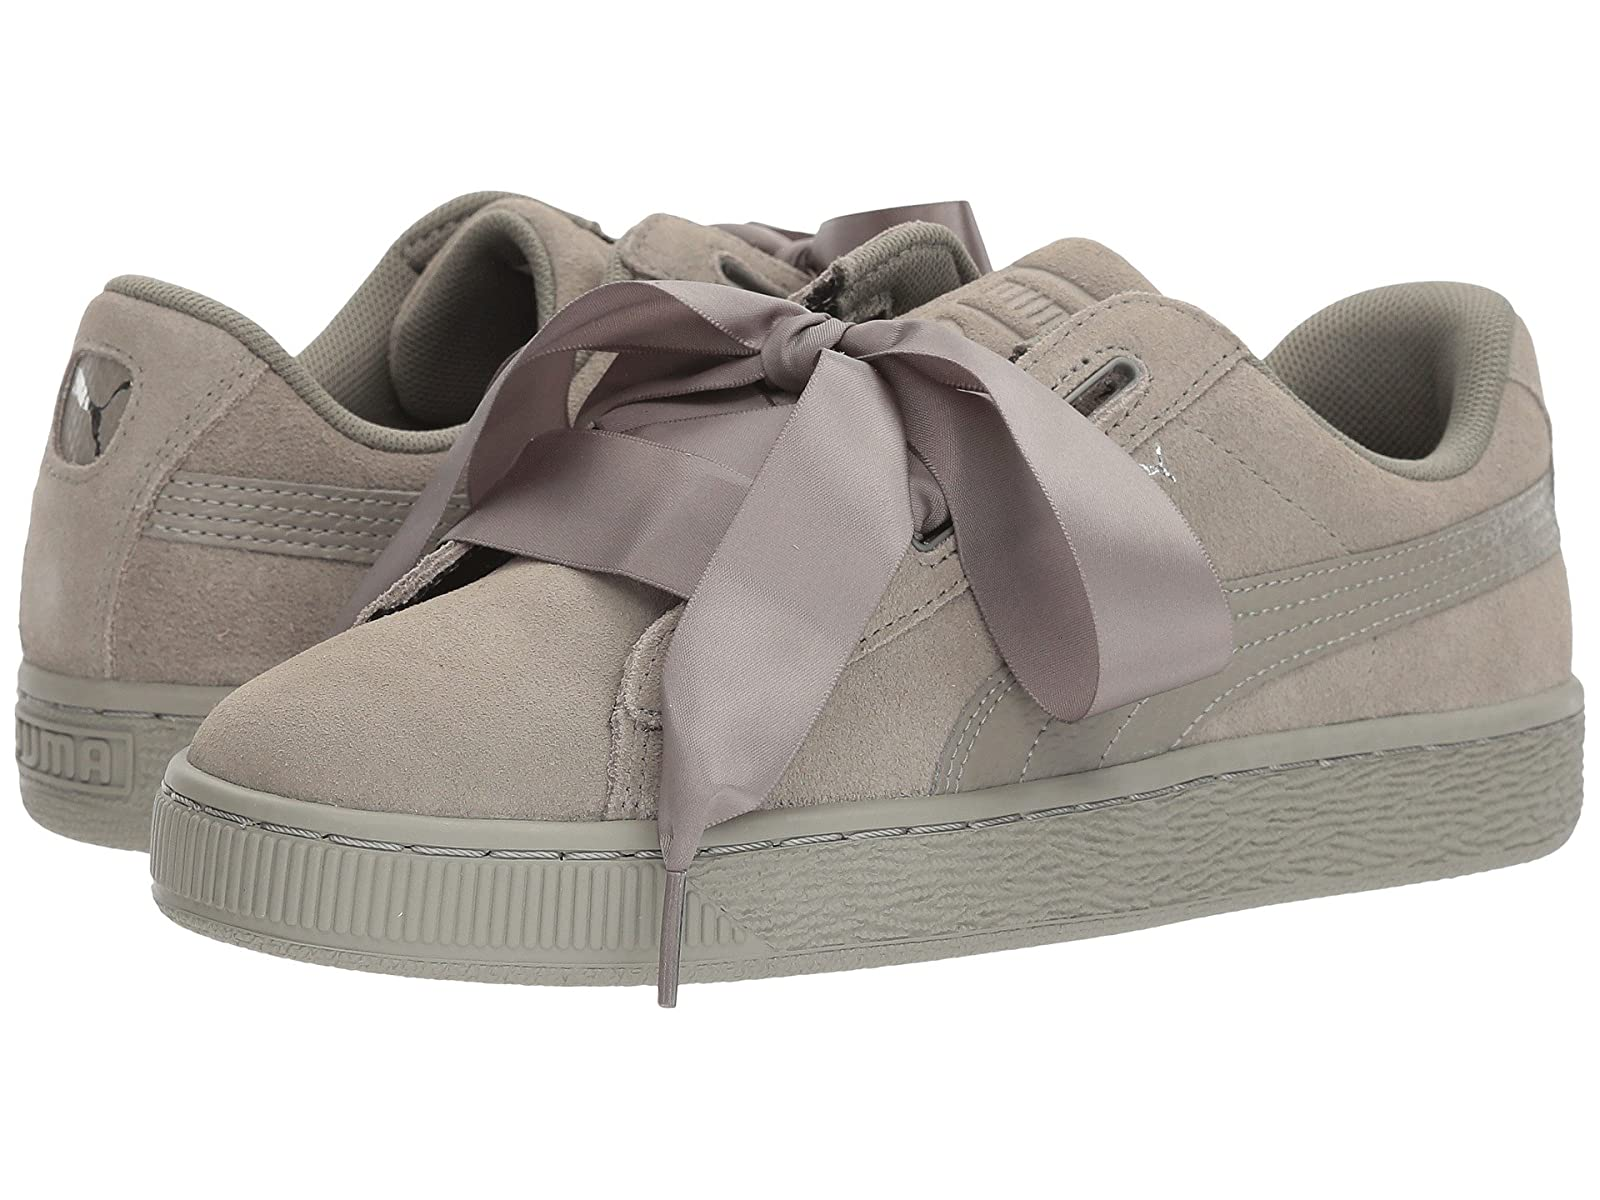 Puma Kids Suede Heart SNK (Big Kid)Cheap and distinctive eye-catching shoes